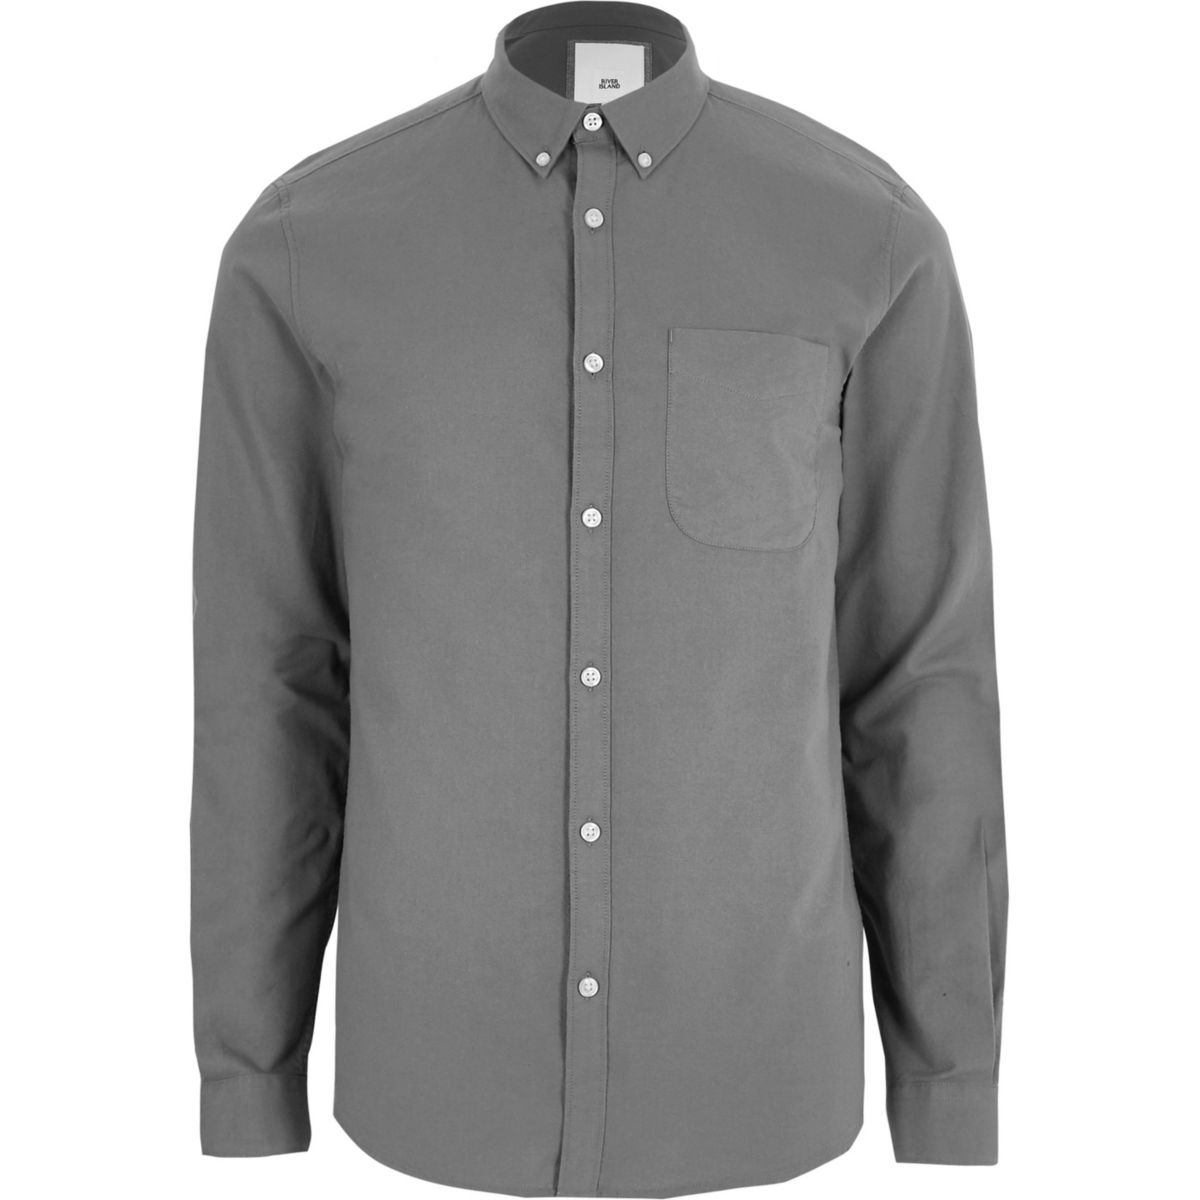 Dark grey button-down casual Oxford shirt